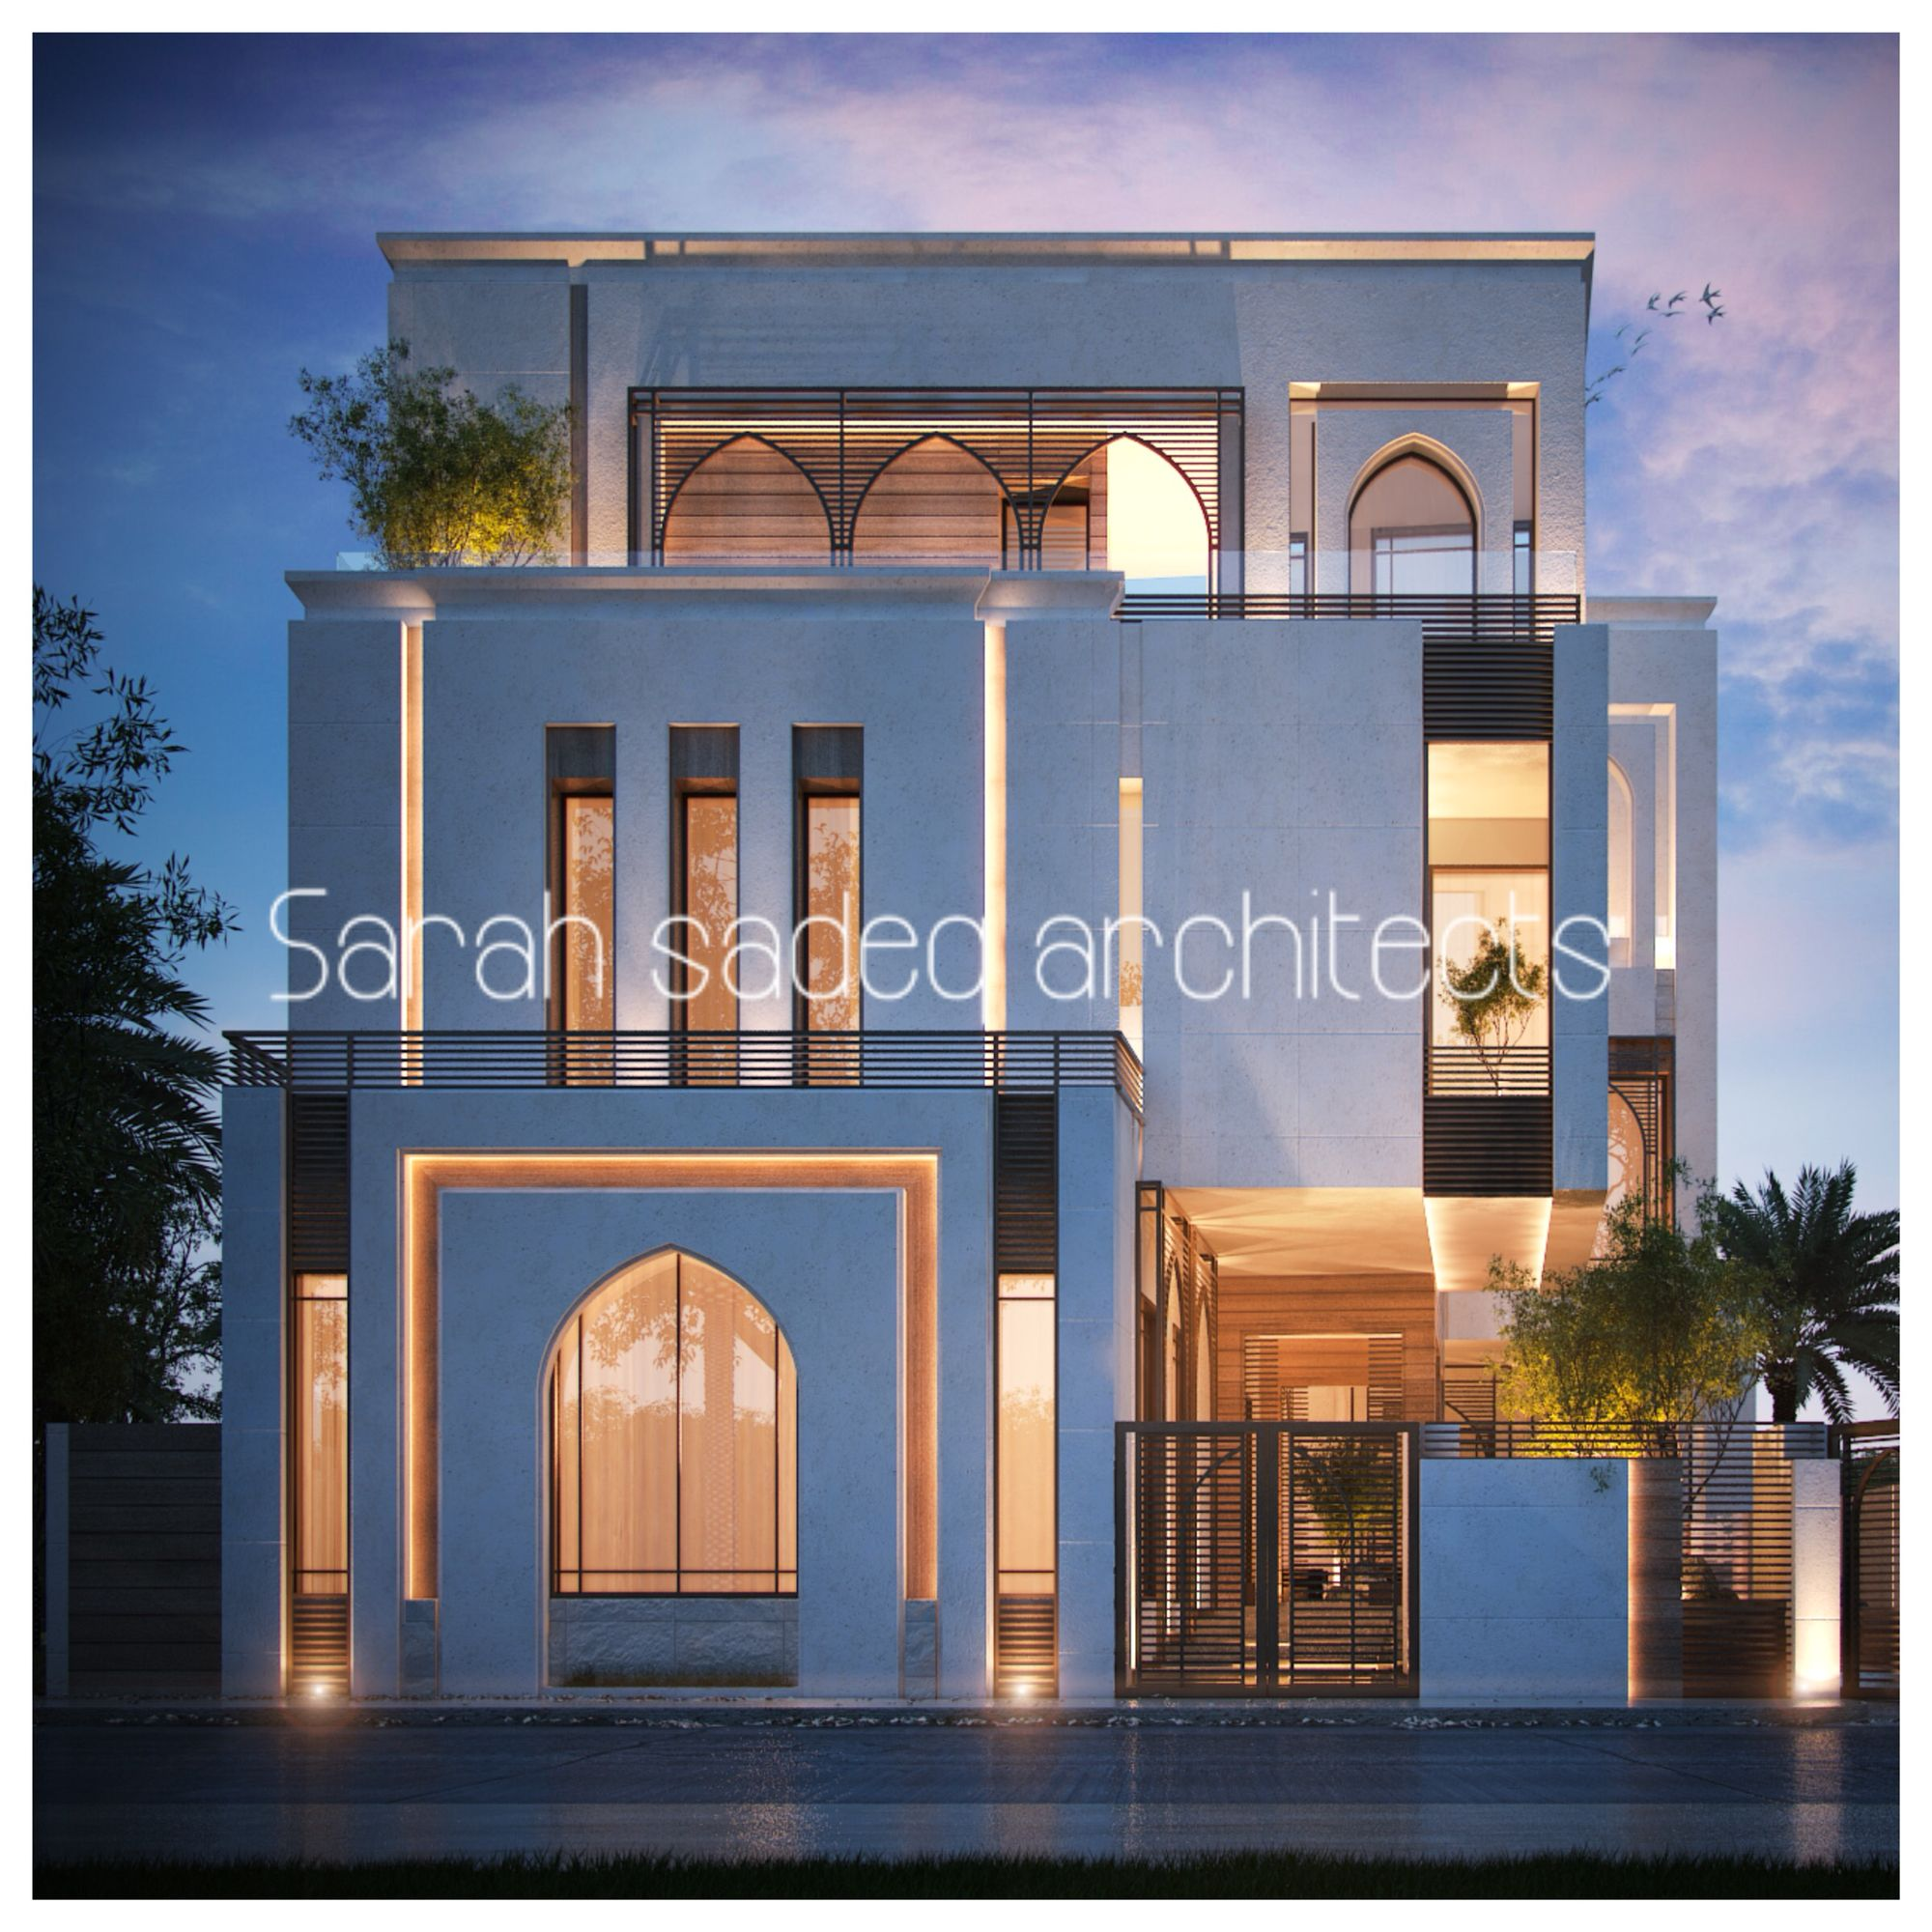 500 m private villa kuwait sarah sadeq architects